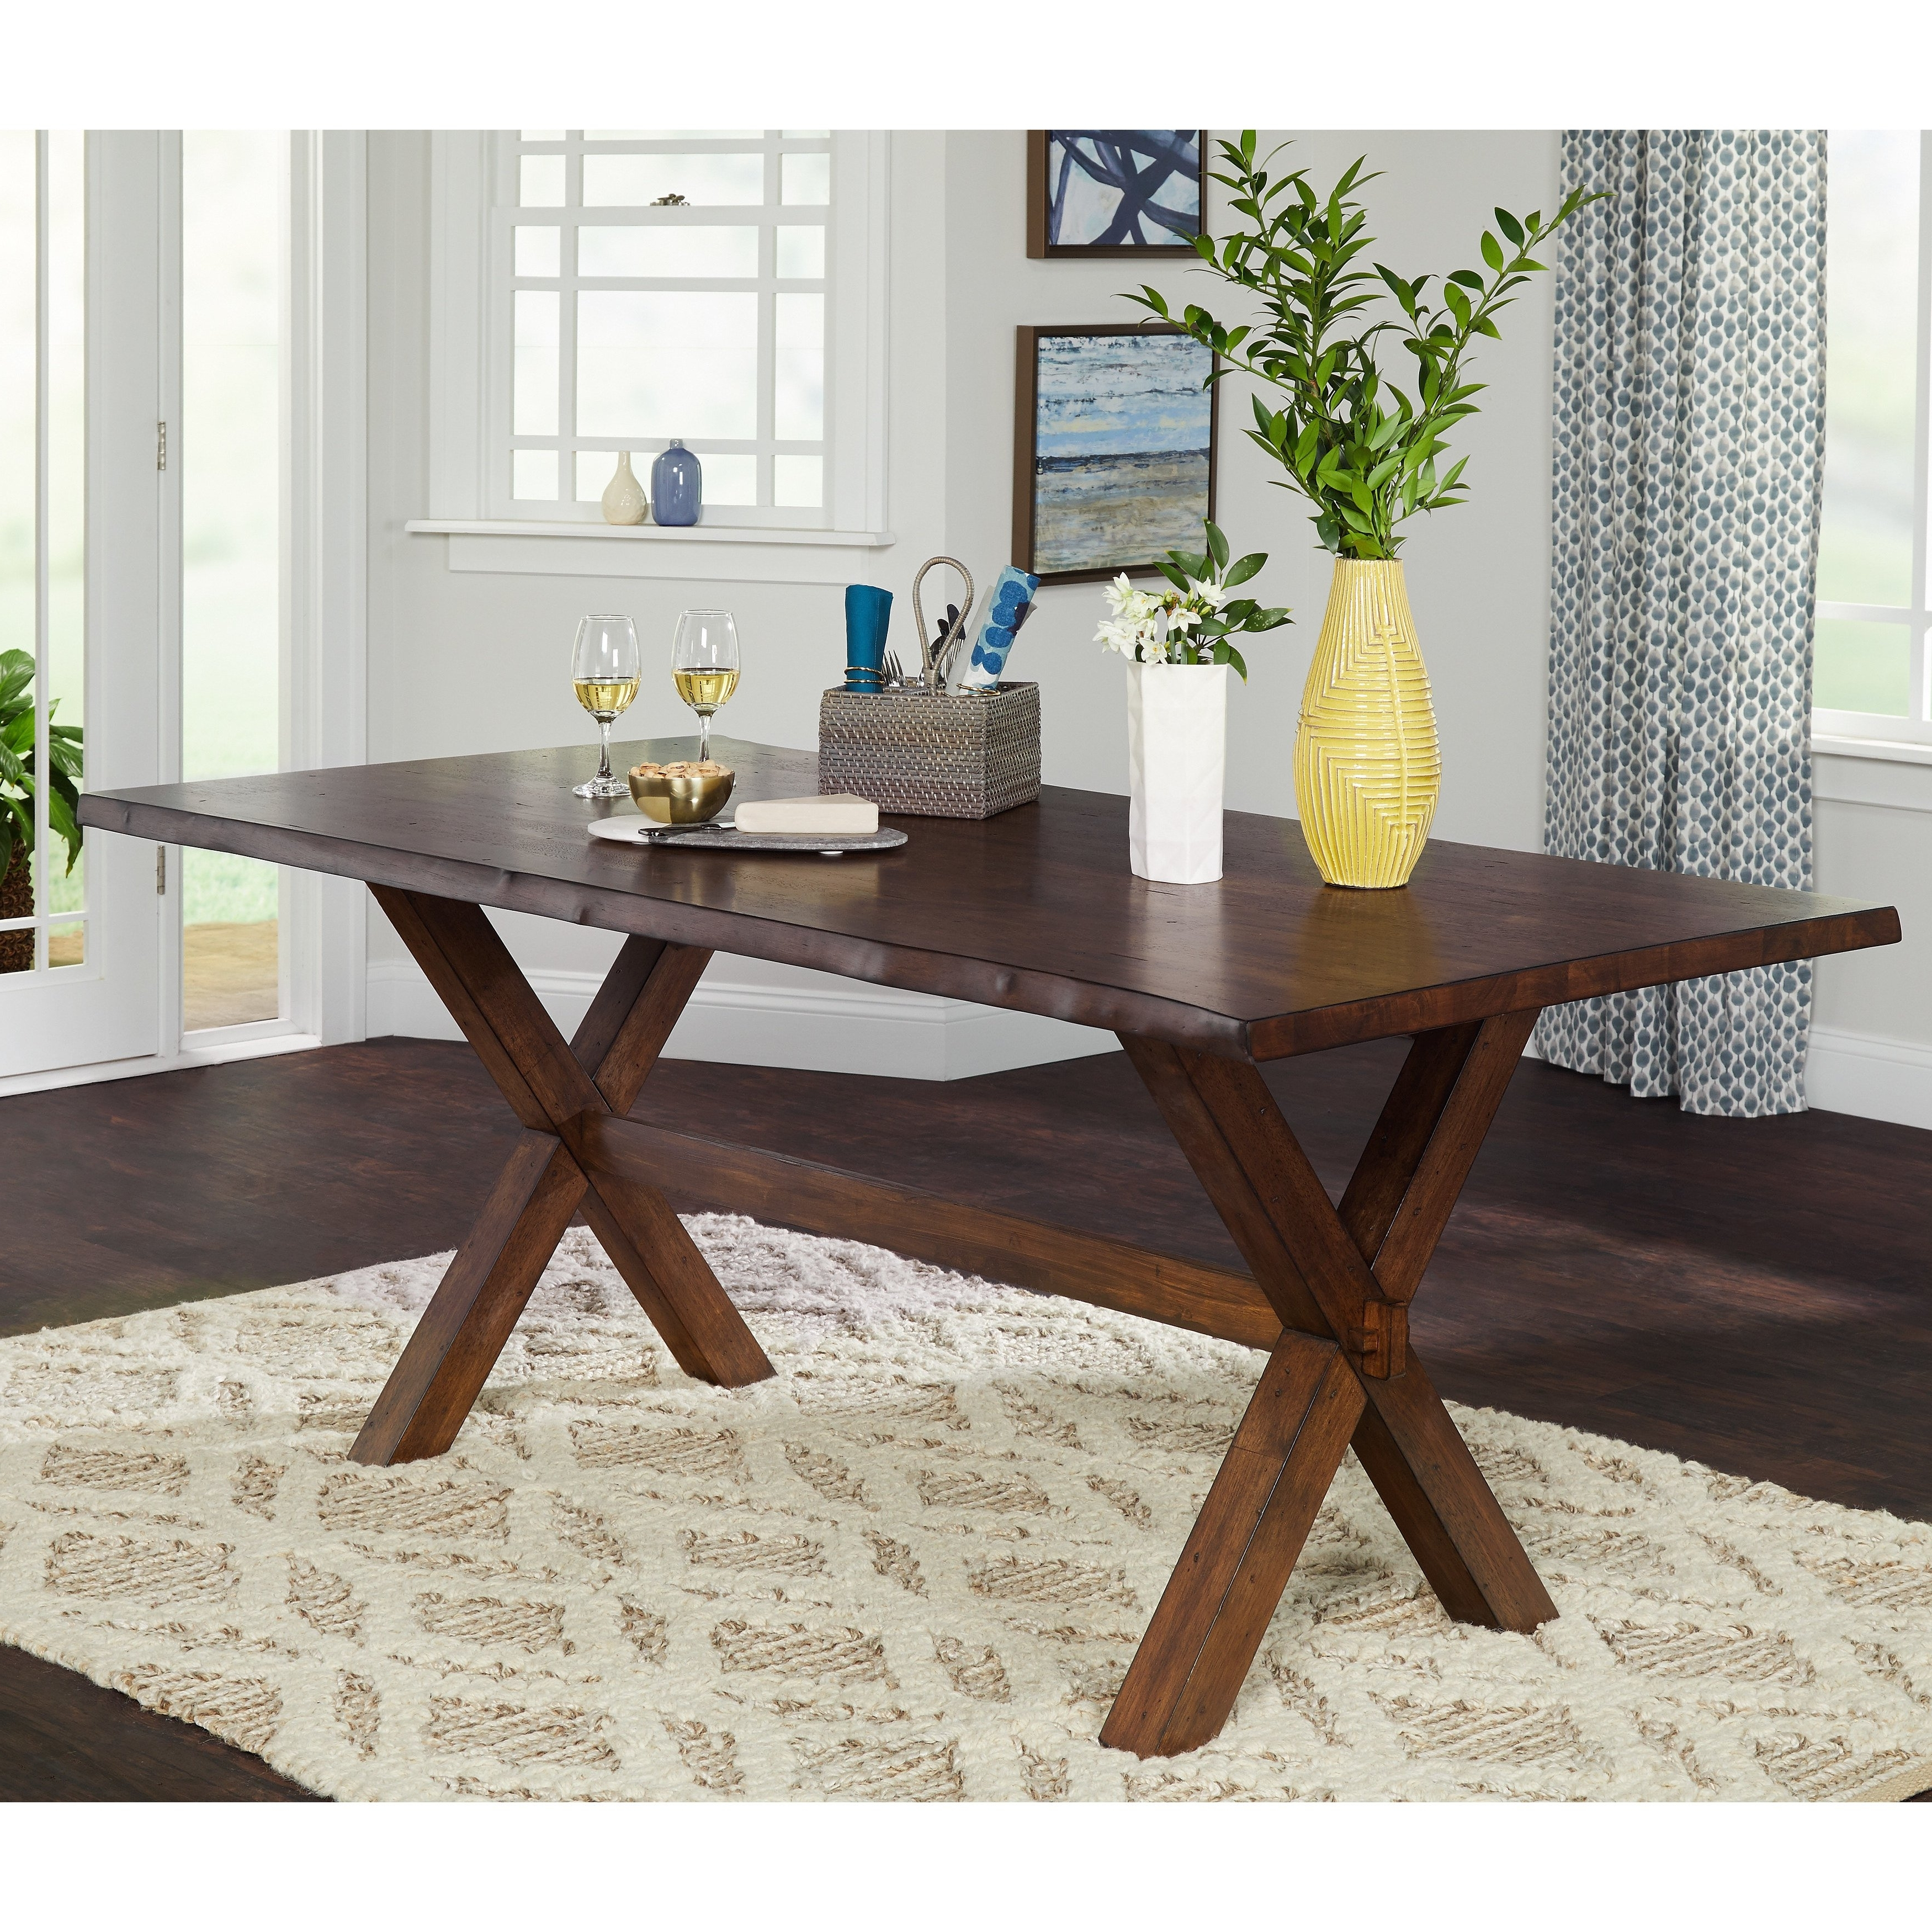 Solid Wood Dining Tables With Regard To Trendy Simple Living Mandeville Live Edge Solid Wood Dining Table – Walnut (View 19 of 25)